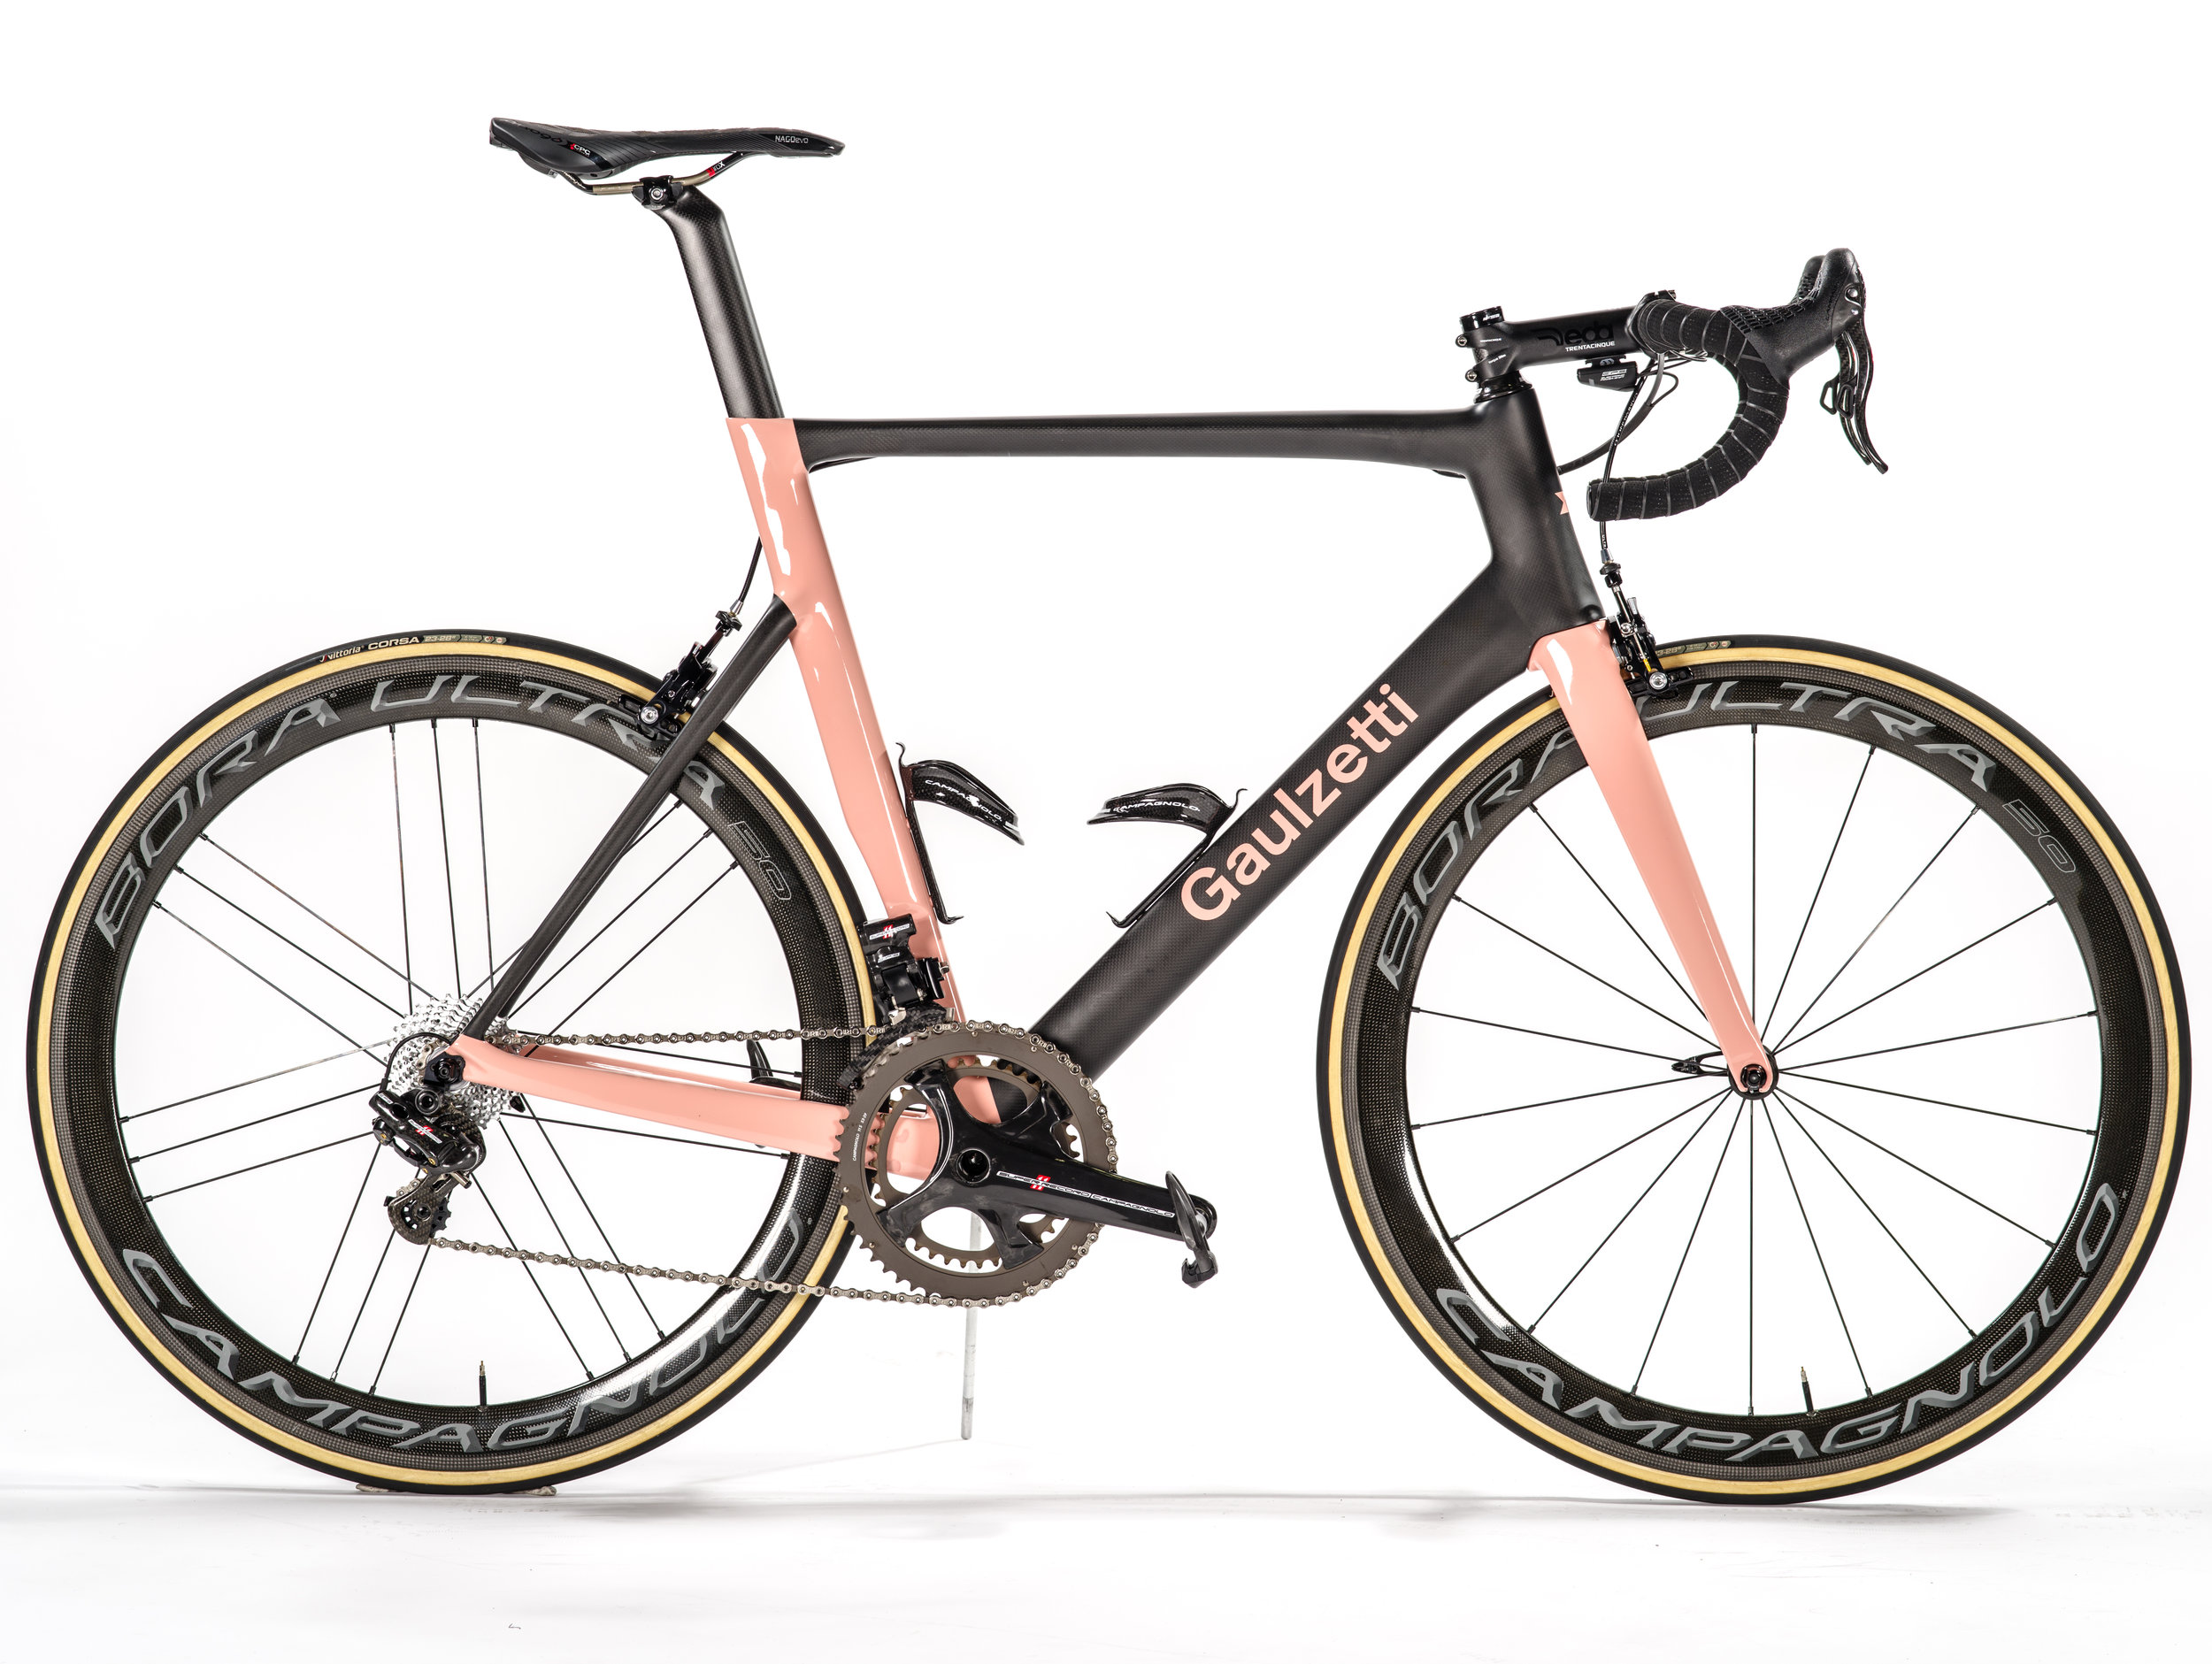 Campagnolo Best Build - Honorable Mention - Gaulzetti